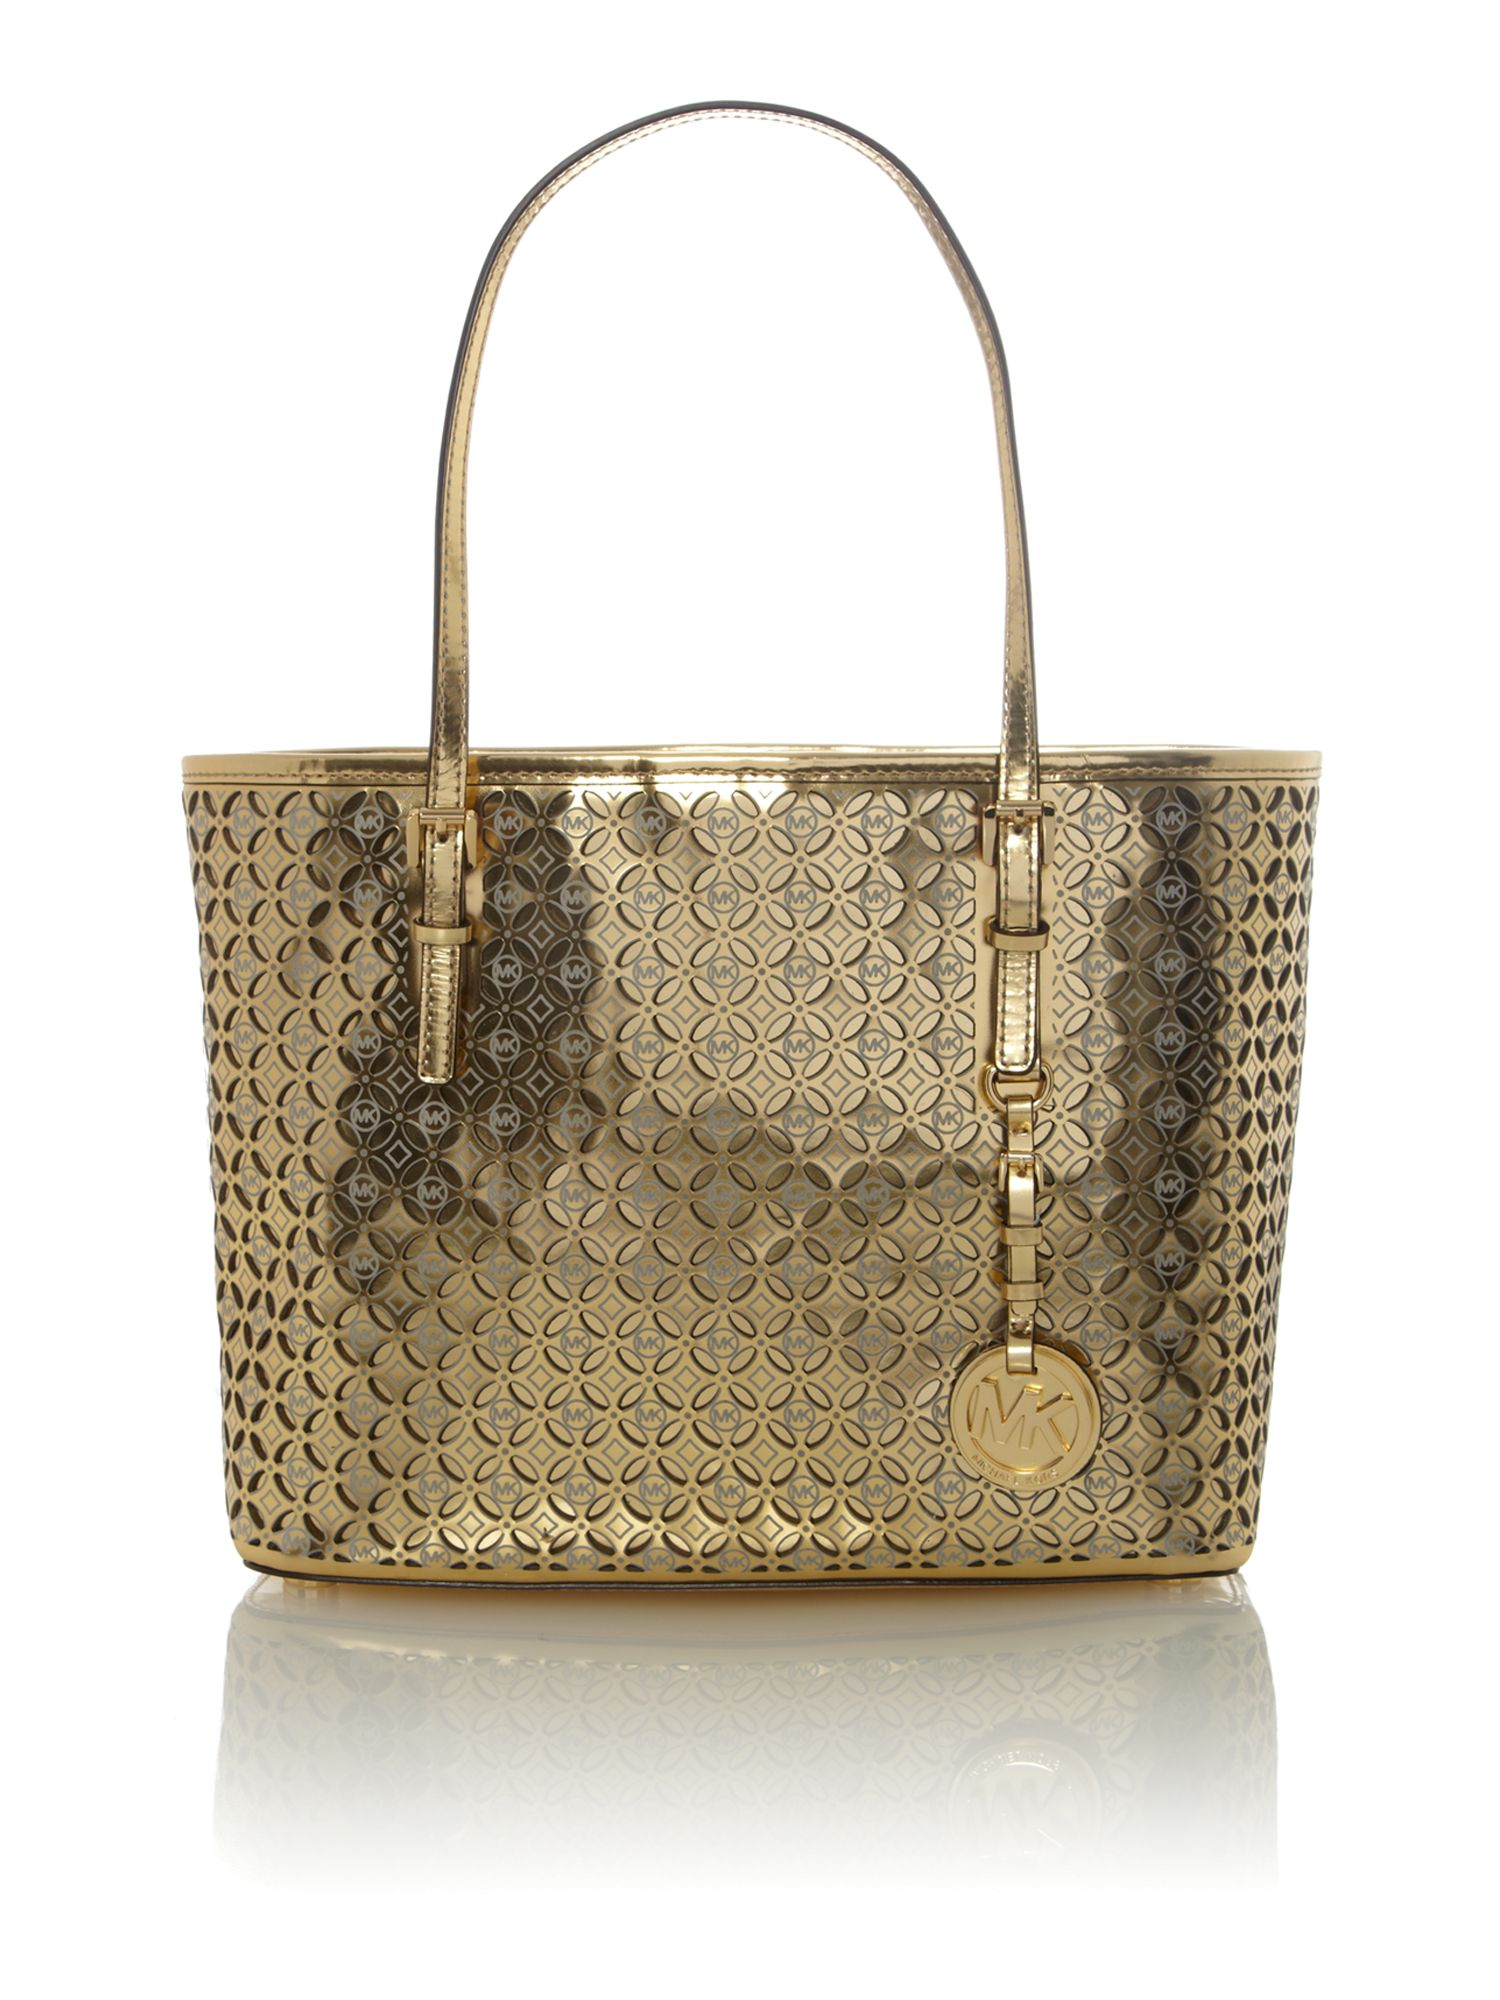 Flower perforated gold small tote bag